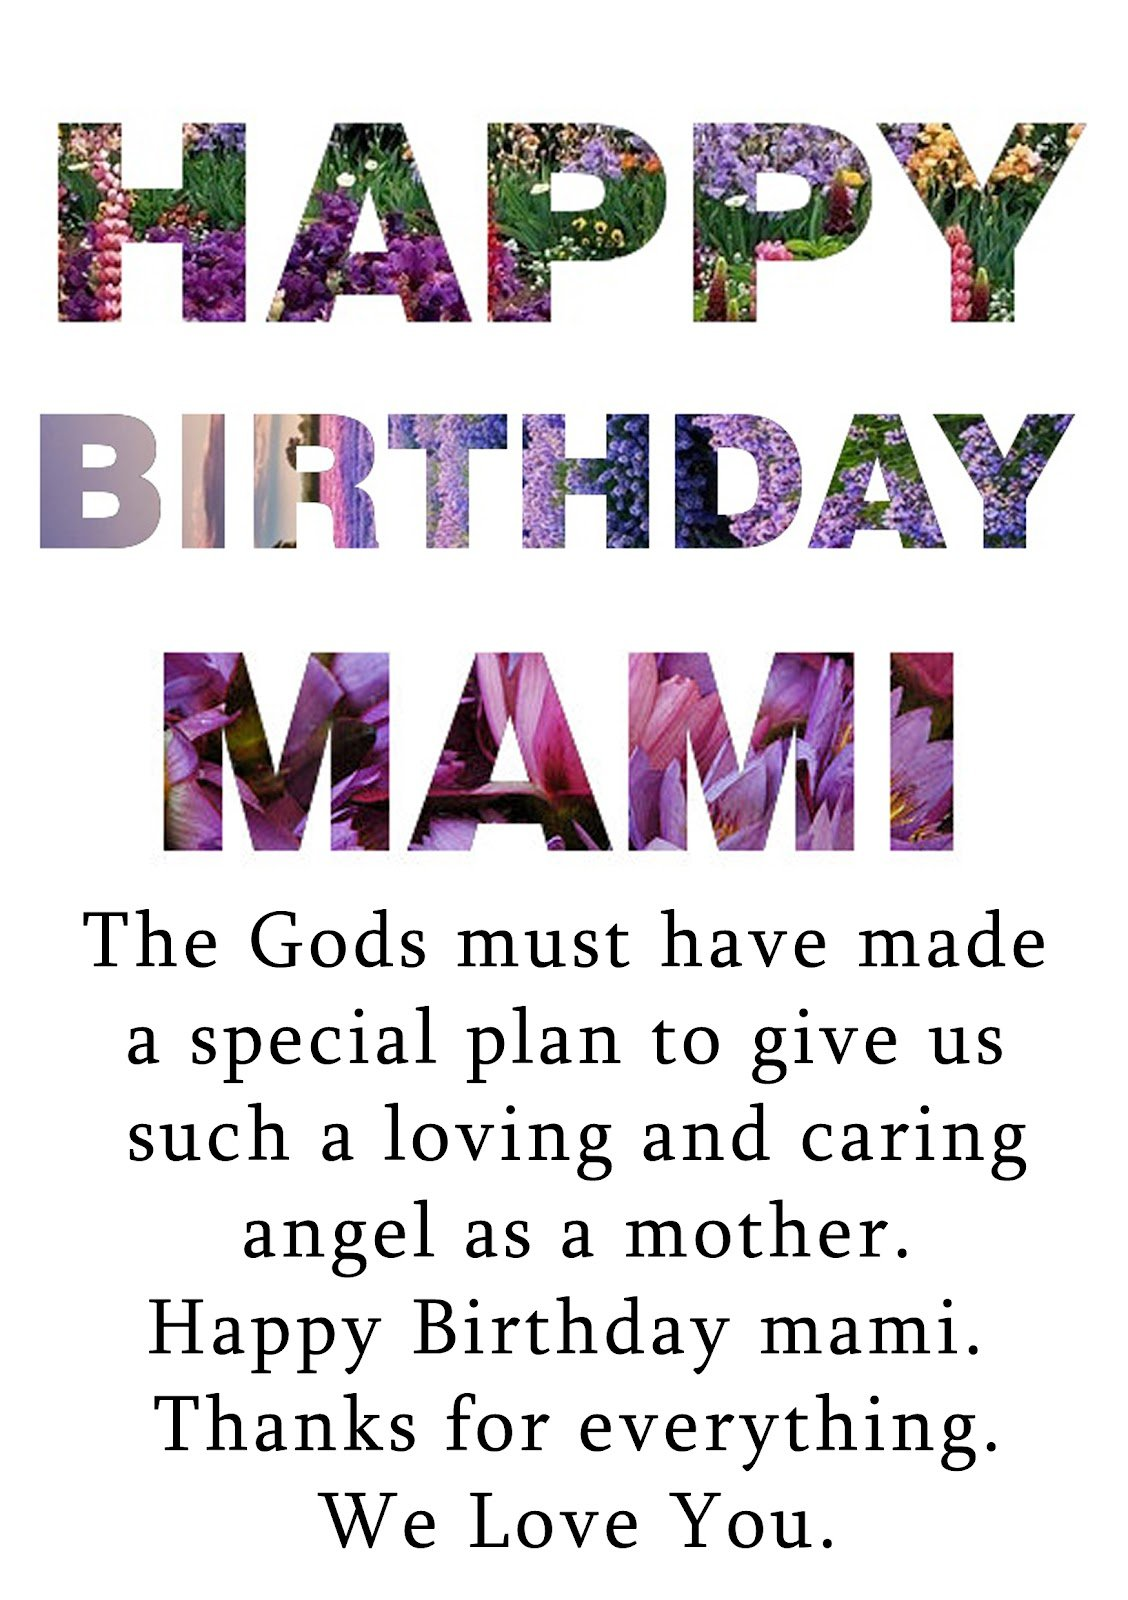 Brilliant Happy Birthday Mother In Law Quotes Quotesgram Personalised Birthday Cards Paralily Jamesorg